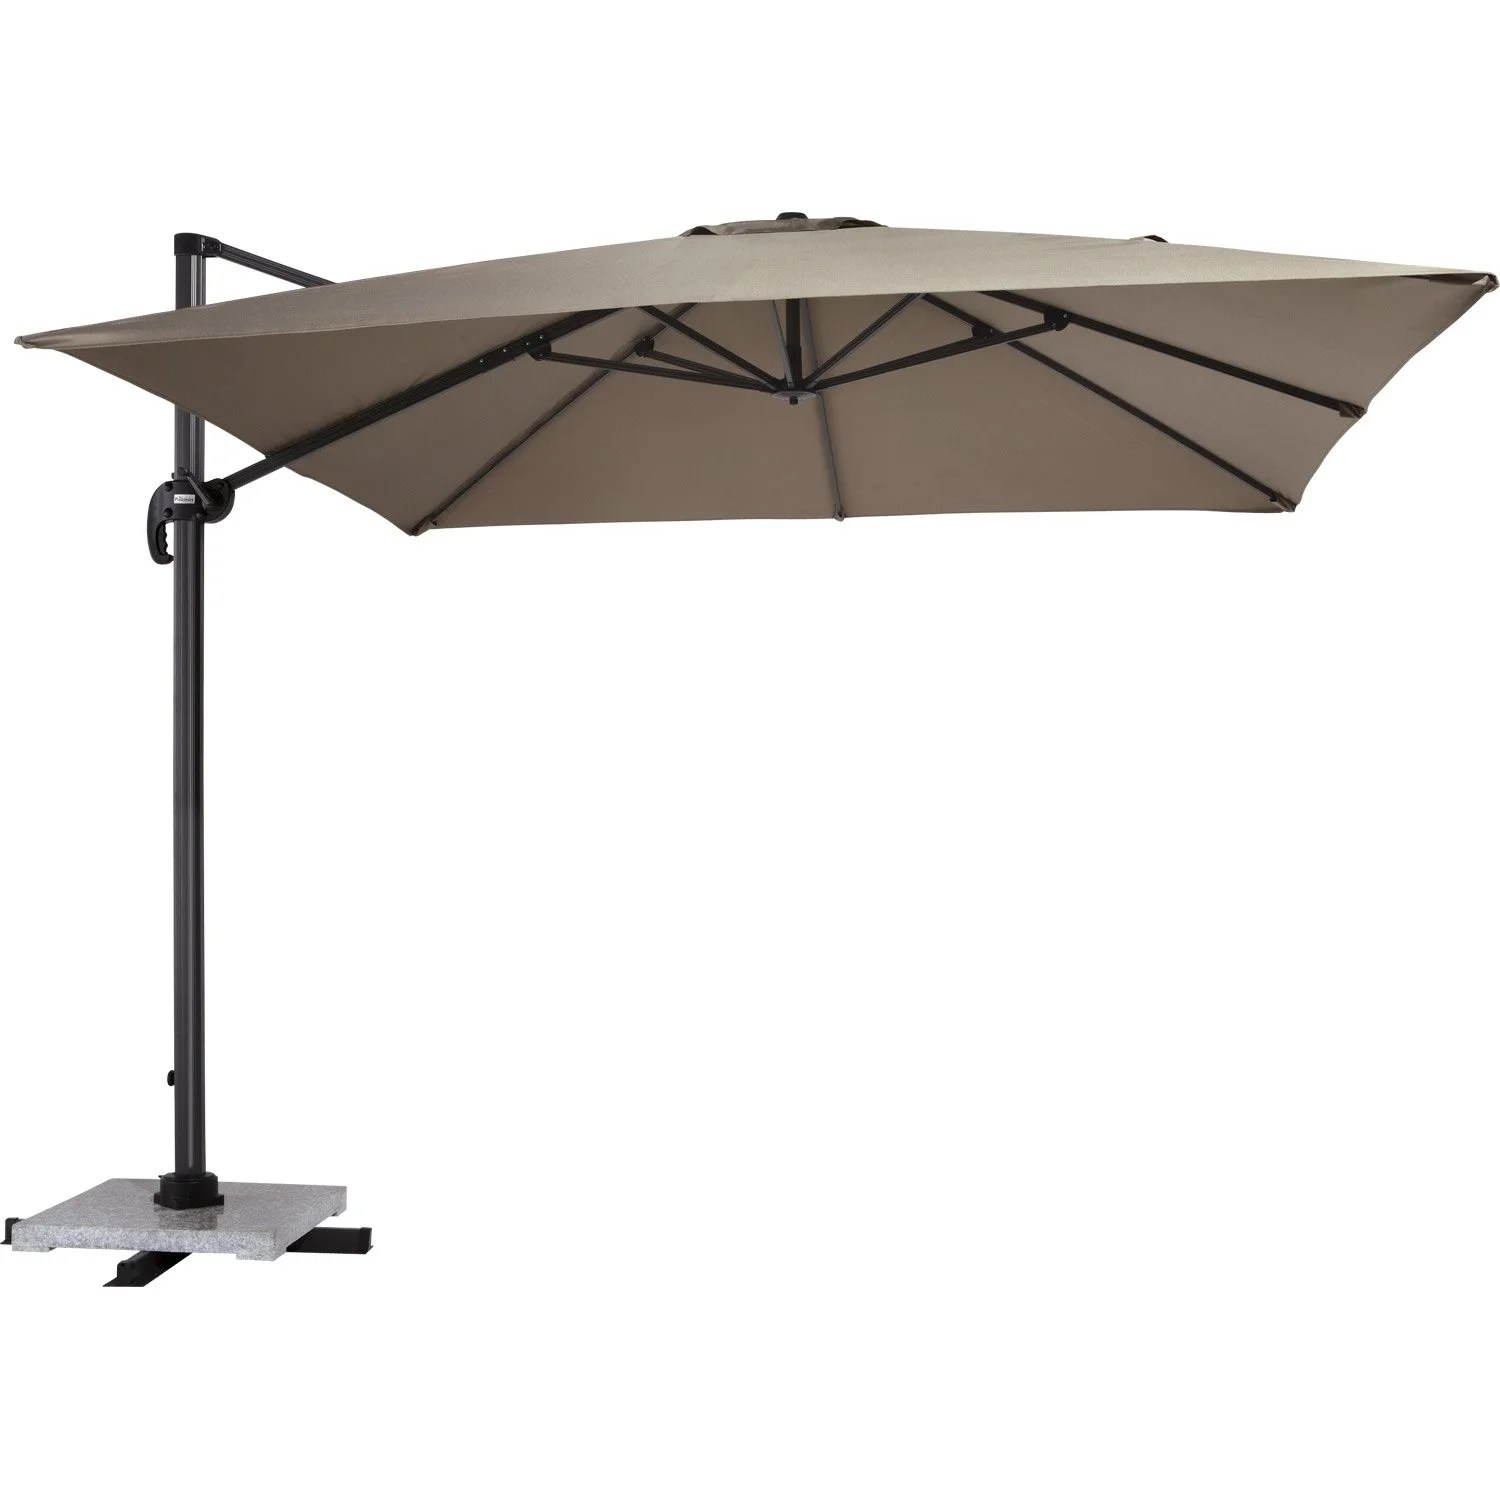 Parasol Soldes Leroy Merlin Parasol Excentré Anita Proloisirs Taupe 9 M² Leroy Merlin